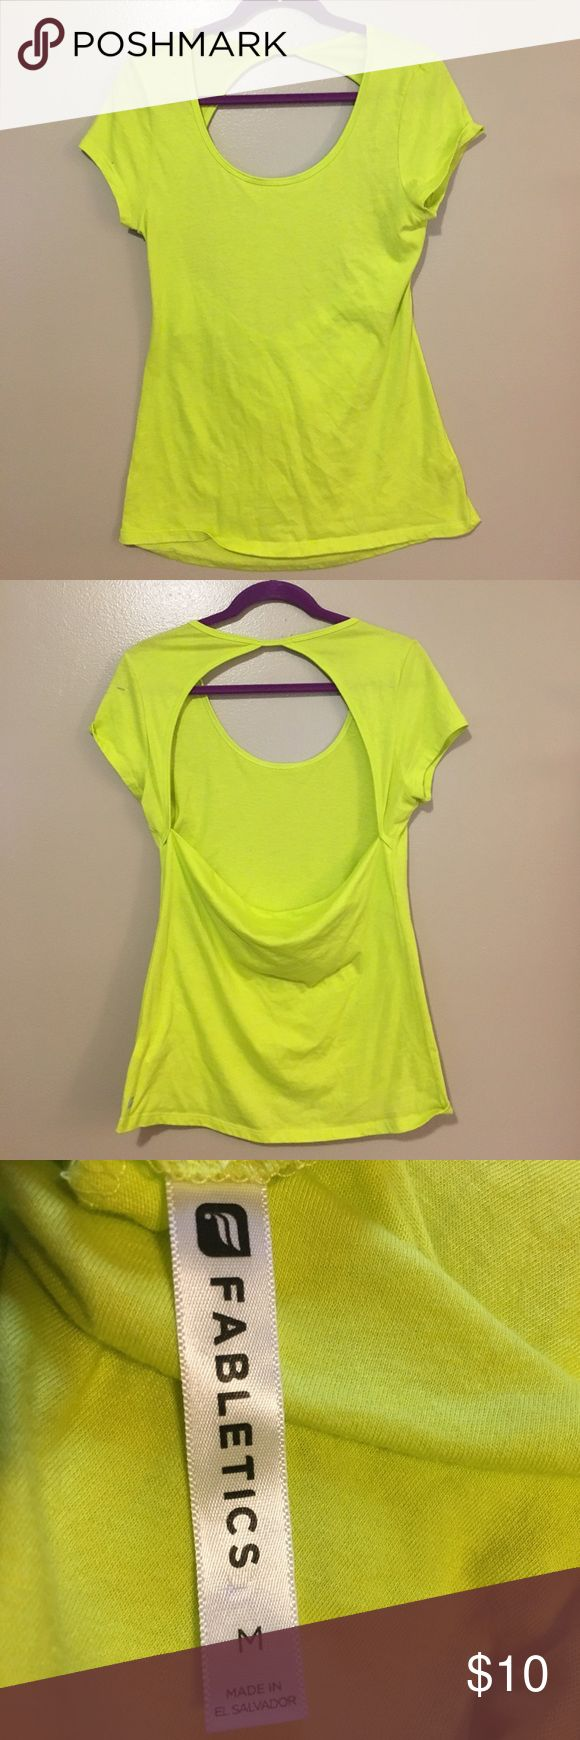 Fabletics Top Neon yellow/green Fabletics Top, open back, short cuff sleeves, size M, never worn, perfect condition Fabletics Tops Tees - Short Sleeve